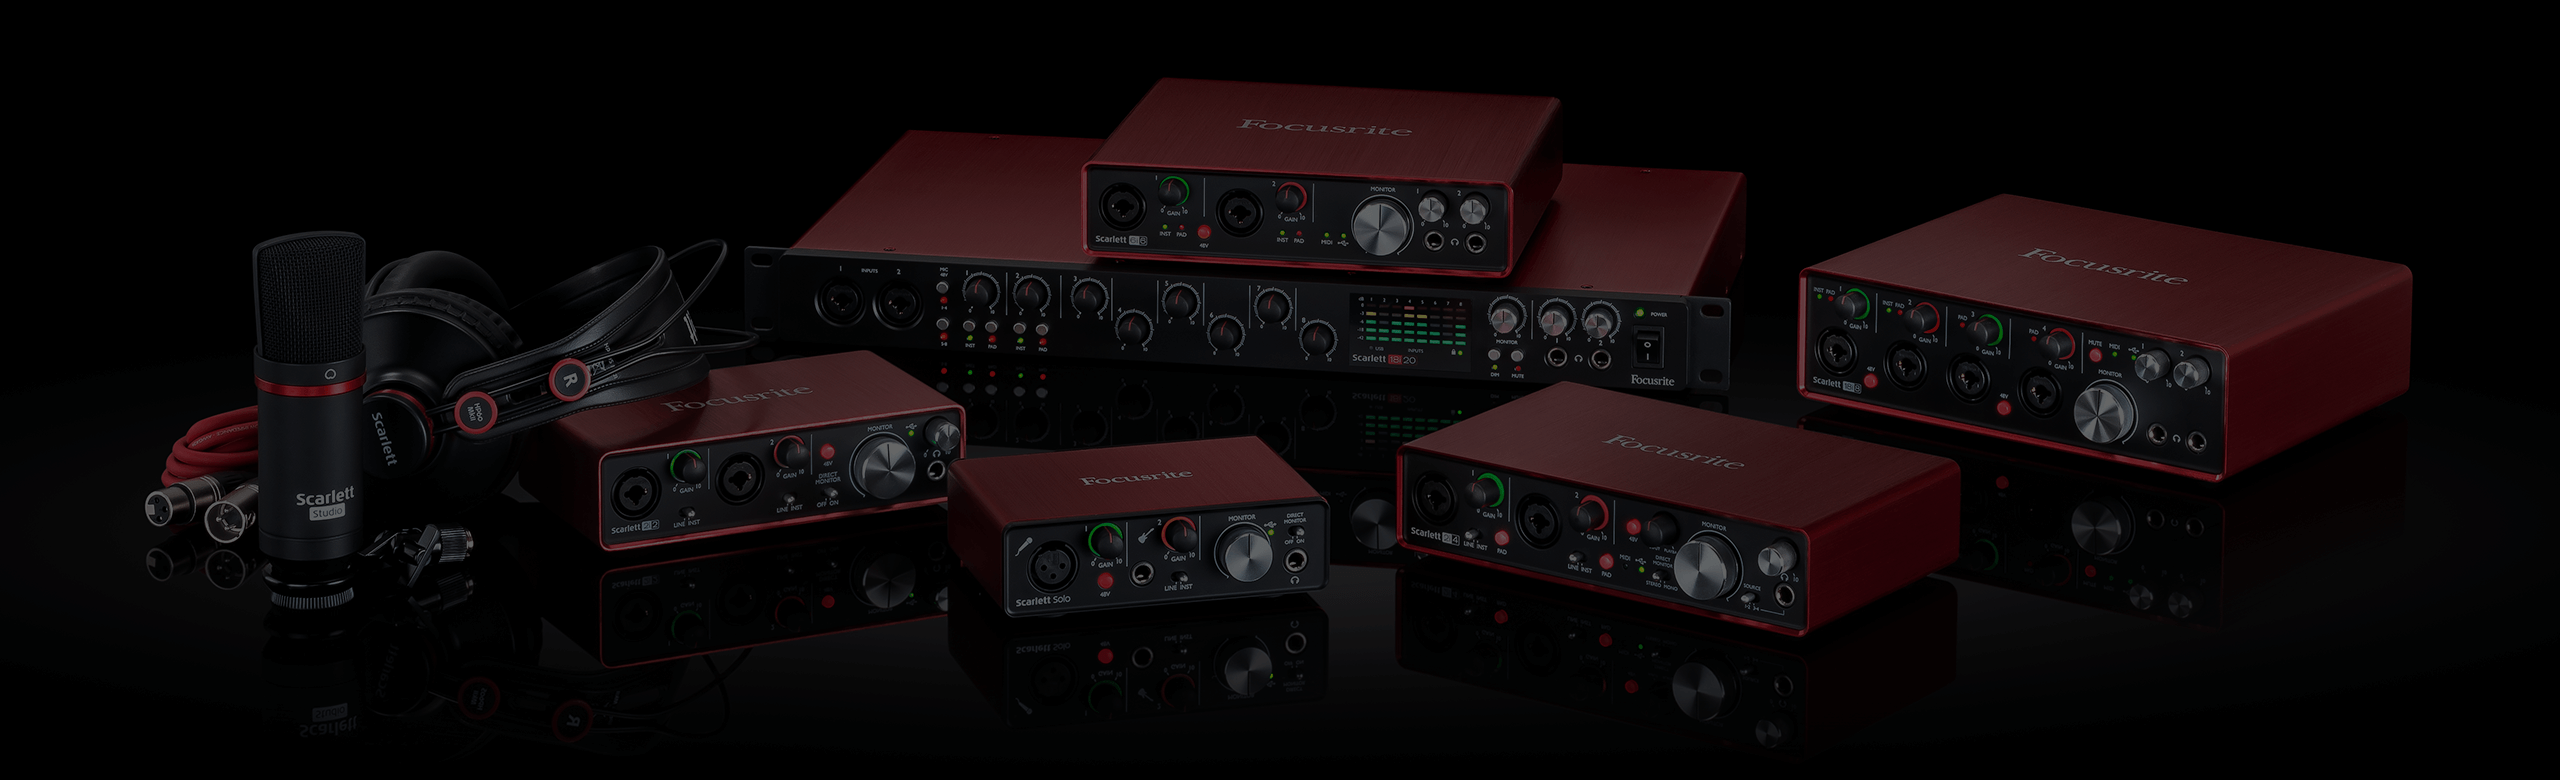 Shot of the Scarlett USB interfaces range